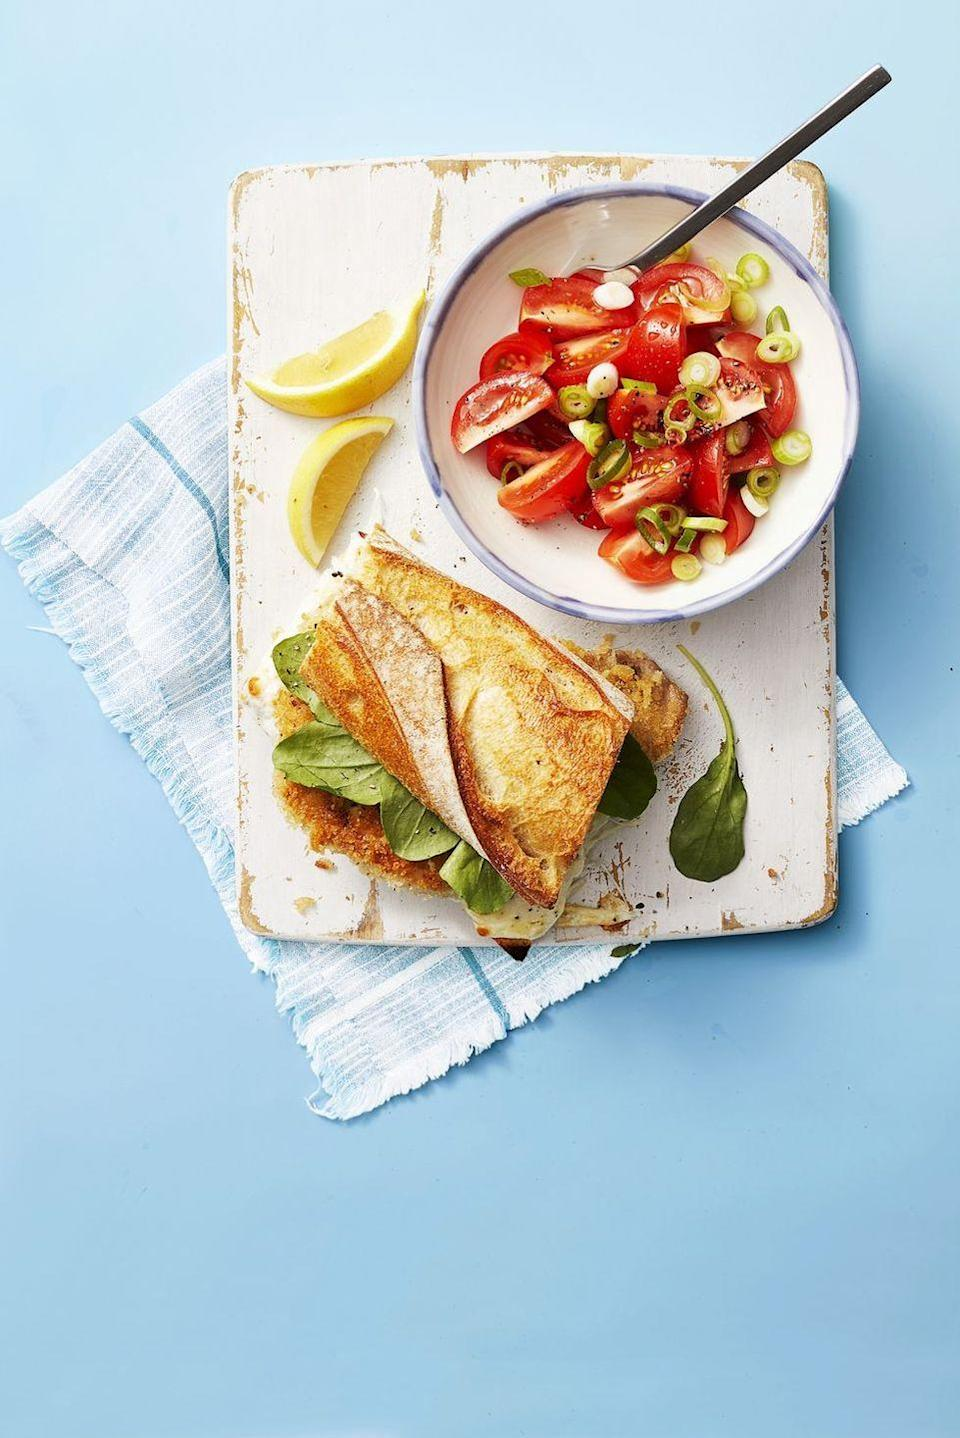 "<p>Our favorite part of this recipe might be the melty mozzarella on the broiled baguette, but the crispy pork cutlet comes in a close second.</p><p><em><a href=""https://www.goodhousekeeping.com/food-recipes/easy/a27543087/pork-milanese-sandwich-with-tomato-salad-recipe/"" rel=""nofollow noopener"" target=""_blank"" data-ylk=""slk:Get the recipe for Pork Milanese Sandwich with Tomato Salad »"" class=""link rapid-noclick-resp"">Get the recipe for Pork Milanese Sandwich with Tomato Salad »</a></em></p>"